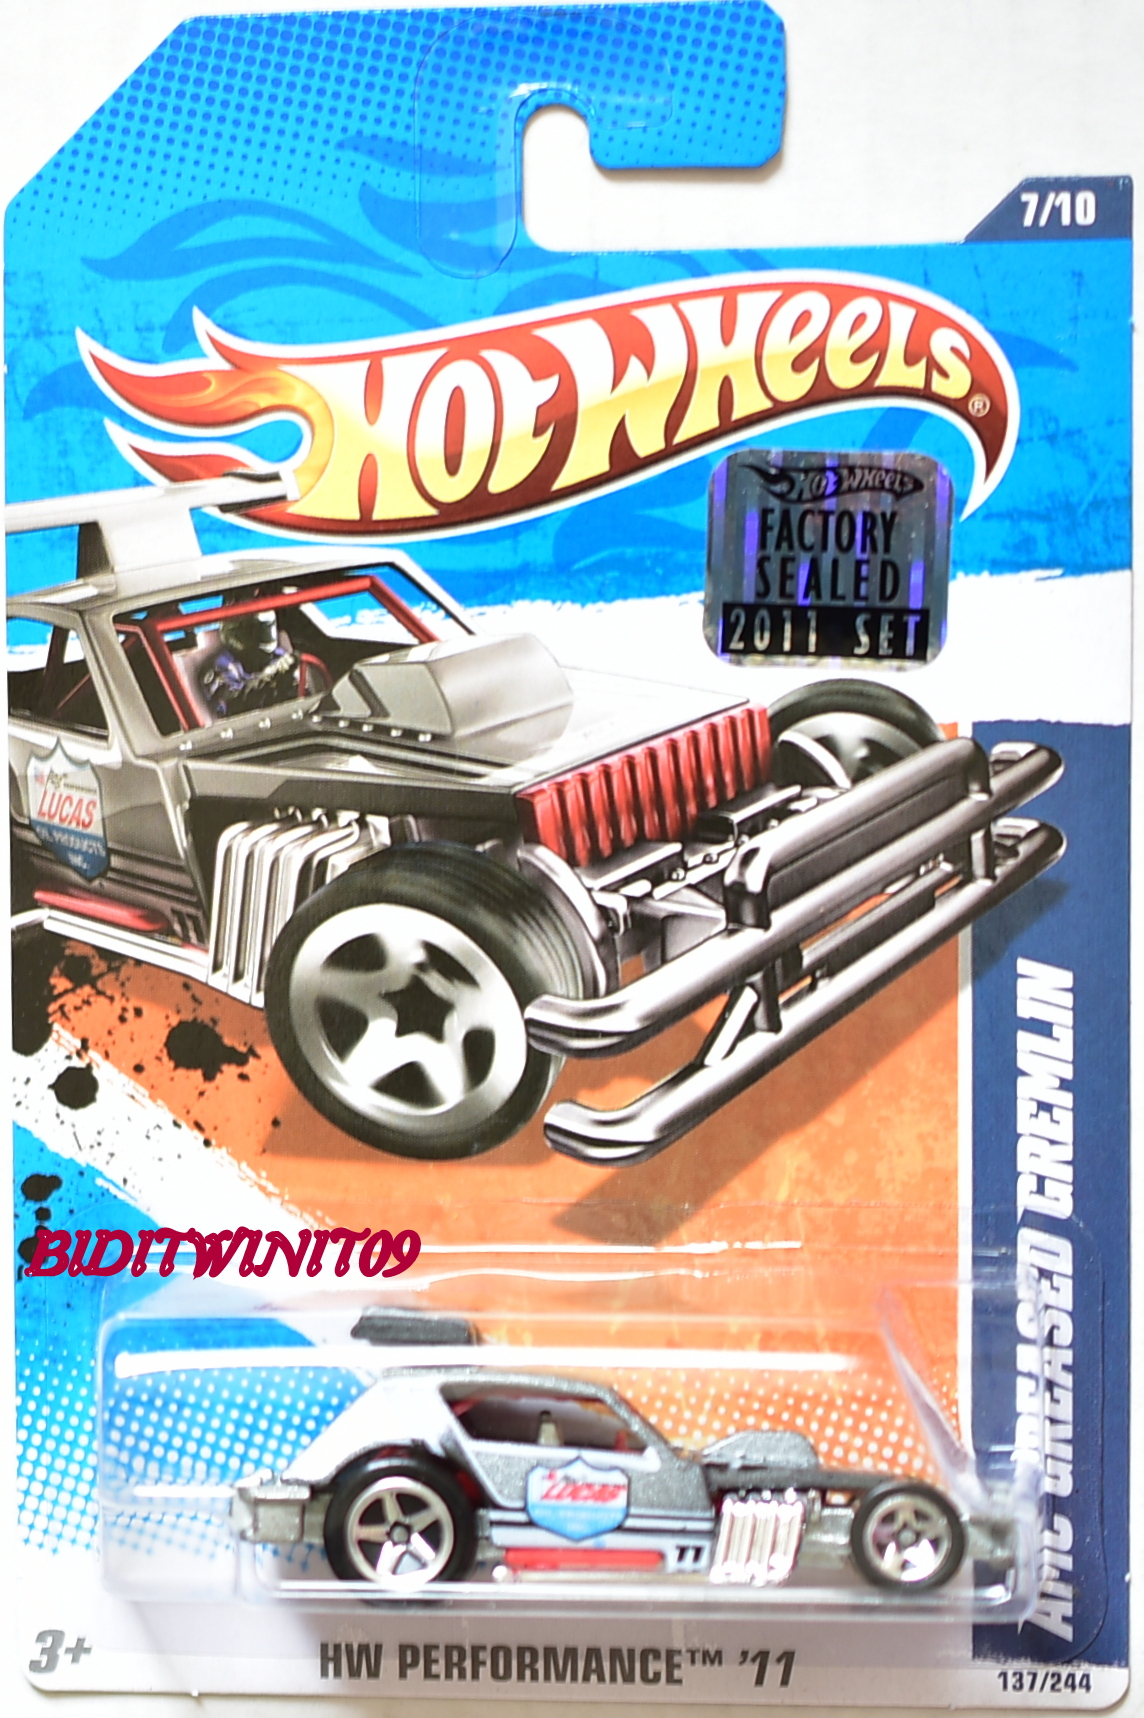 HOT WHEELS 2011 HW PERFORMANCE AMC GREASED GREMLIN FACTORY SEALED